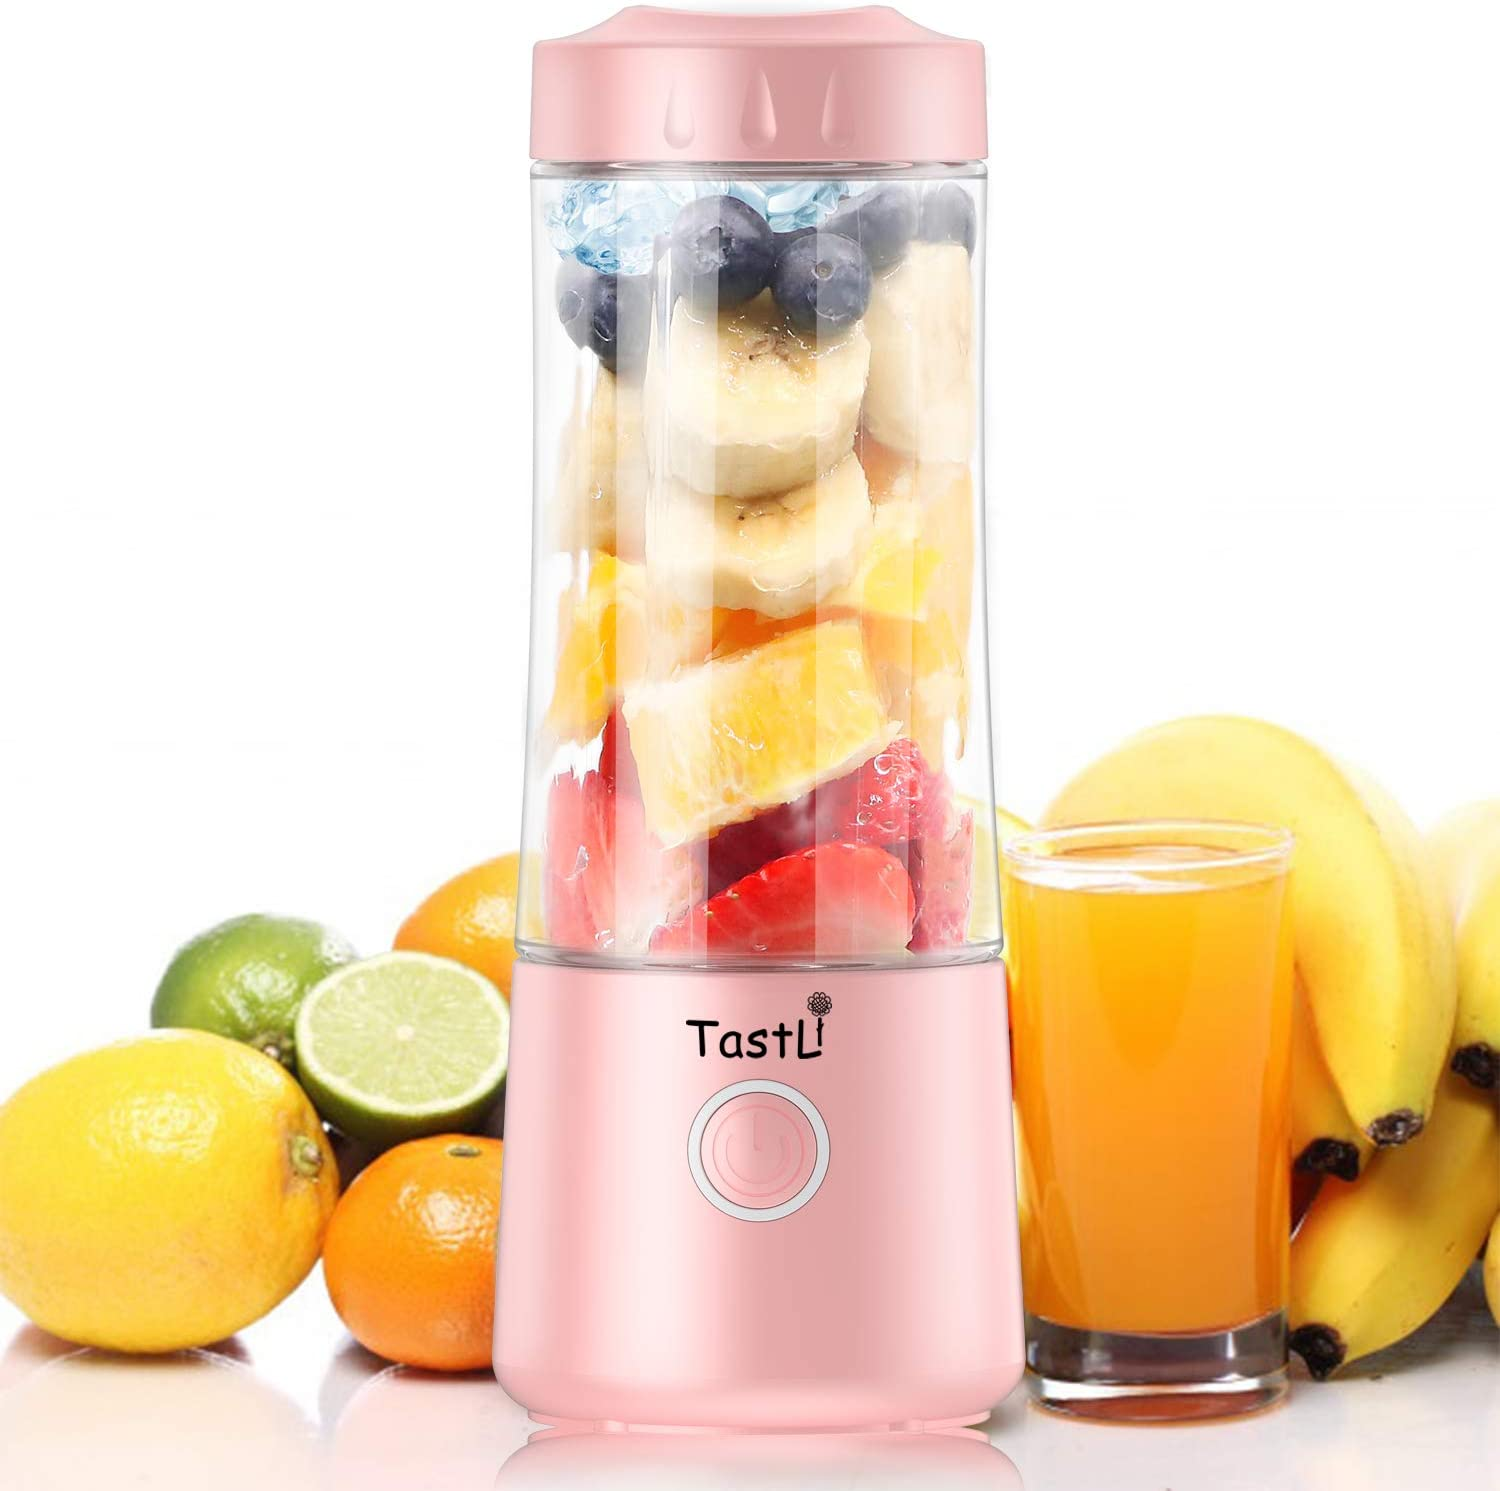 TastLi Portable Personal Blender, Mini Travel Fruit Ice Electric Smoothie Blender Juicer Cup Maker Mixer, with 14 oz Bottles, 6 Blades and 4000mAh USB Rechargeable for shakes and smoothies (Pink)